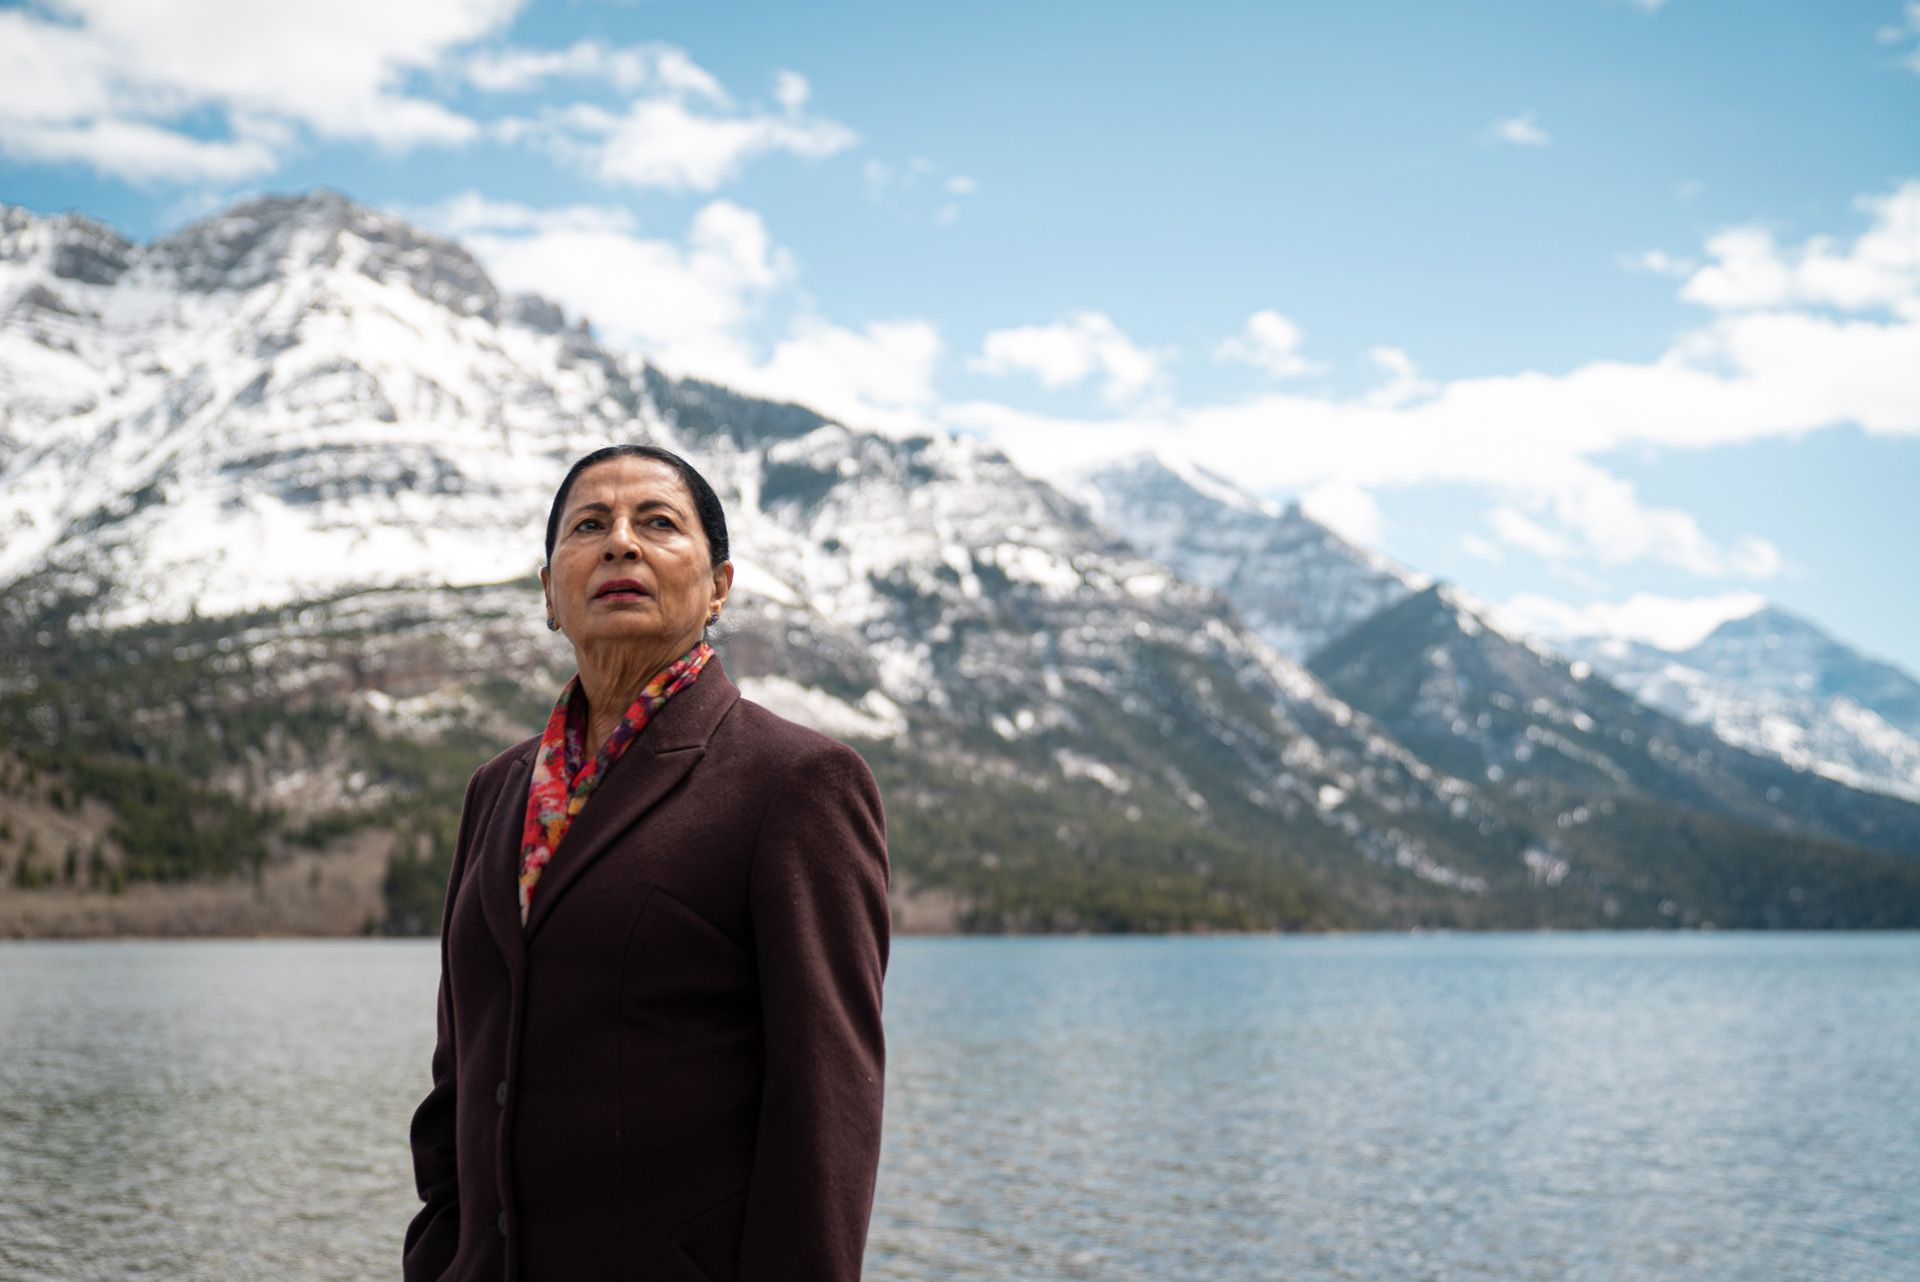 indigenous woman posing in front of snowy mountains and lake by Bruno Florin for BDC Beyond Business with Cossette